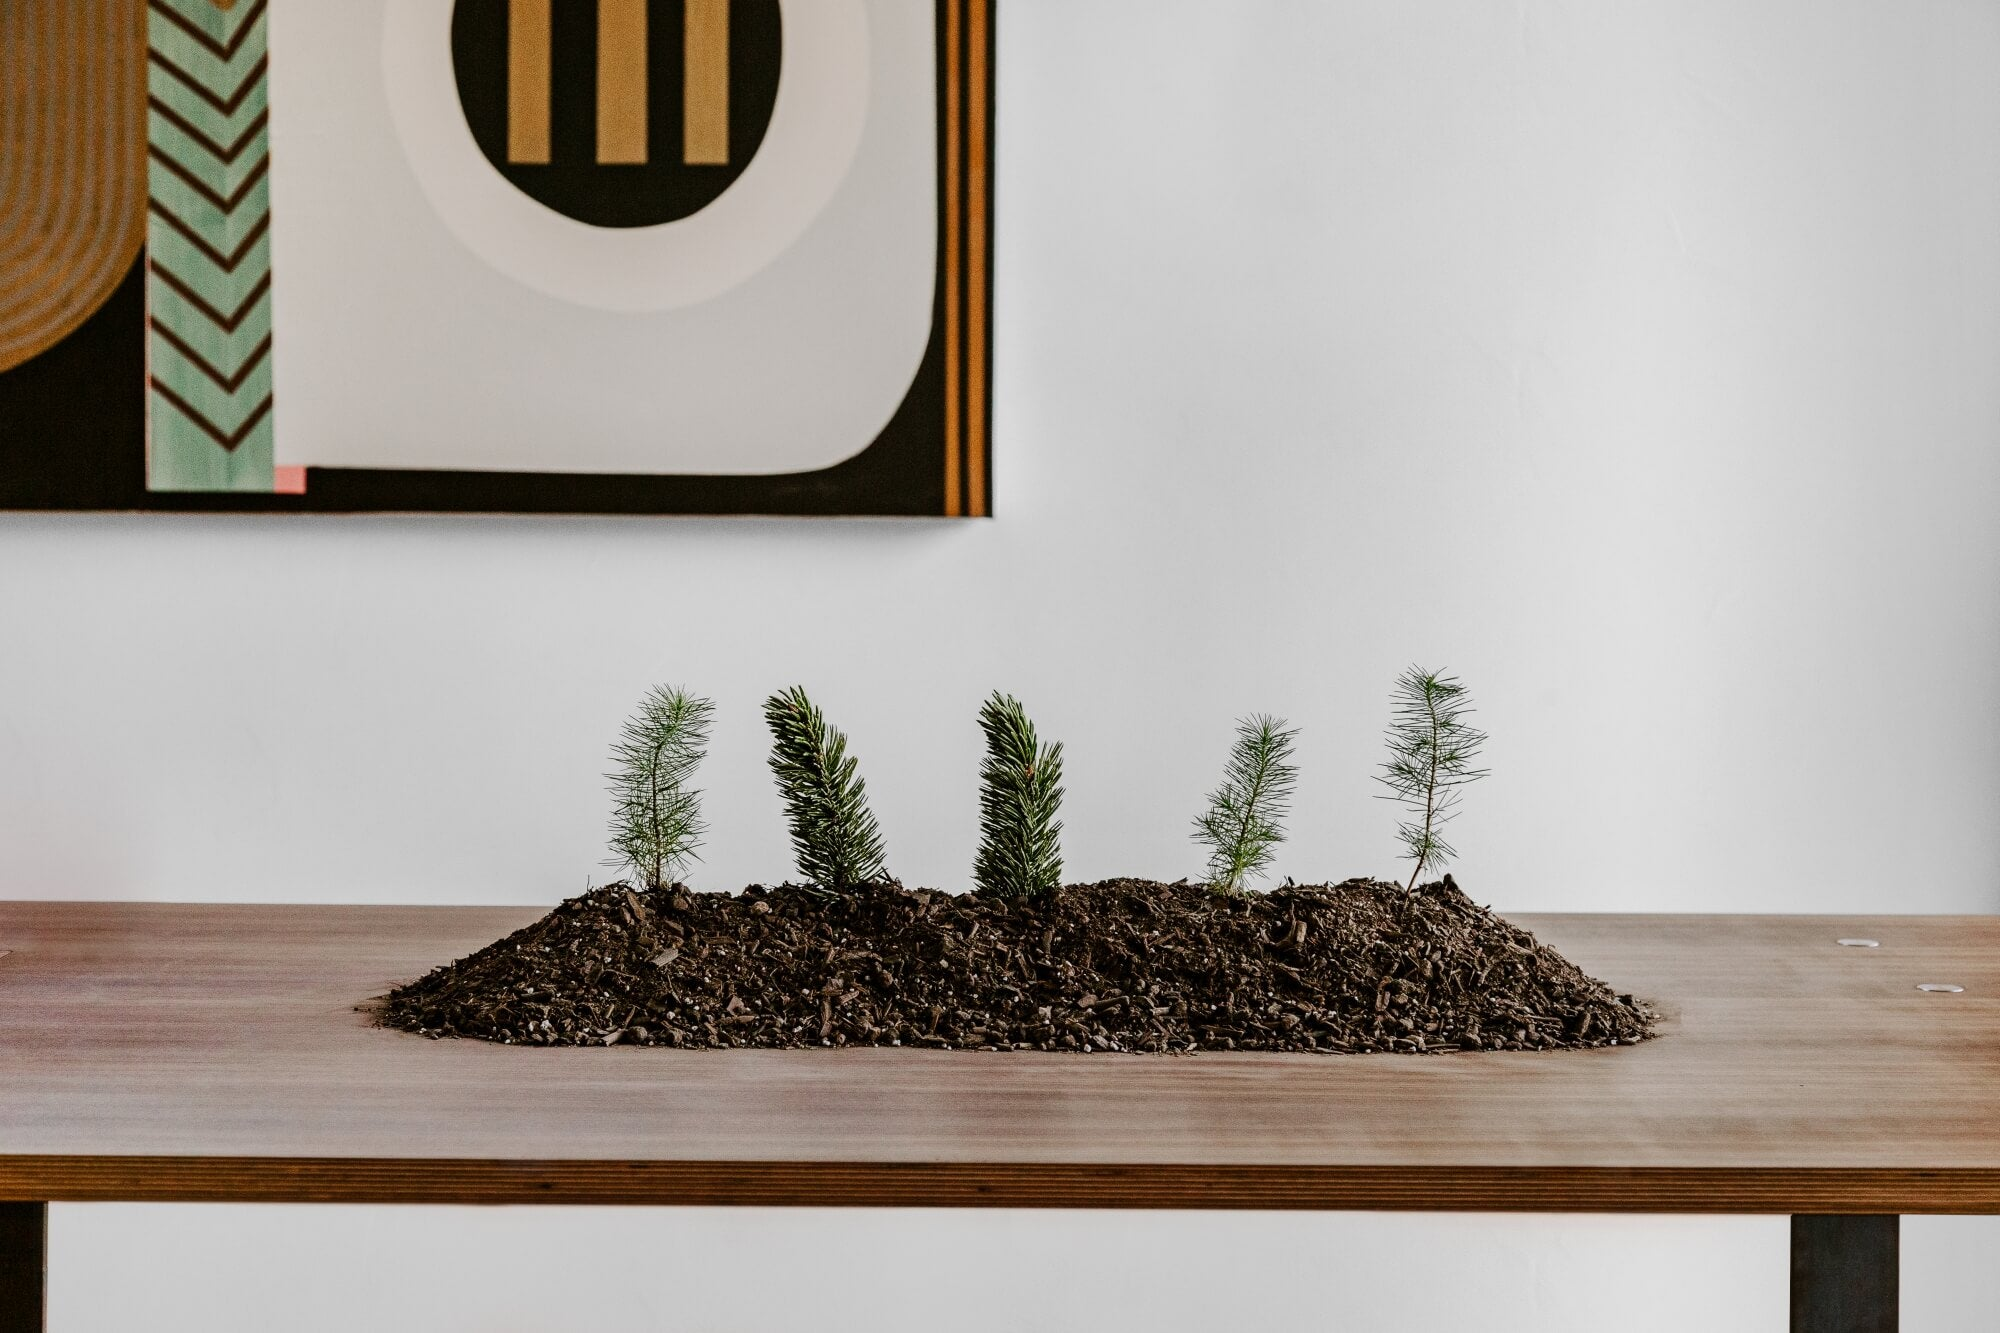 A dining table with a mount of dirt on it and mini trees sticking it.